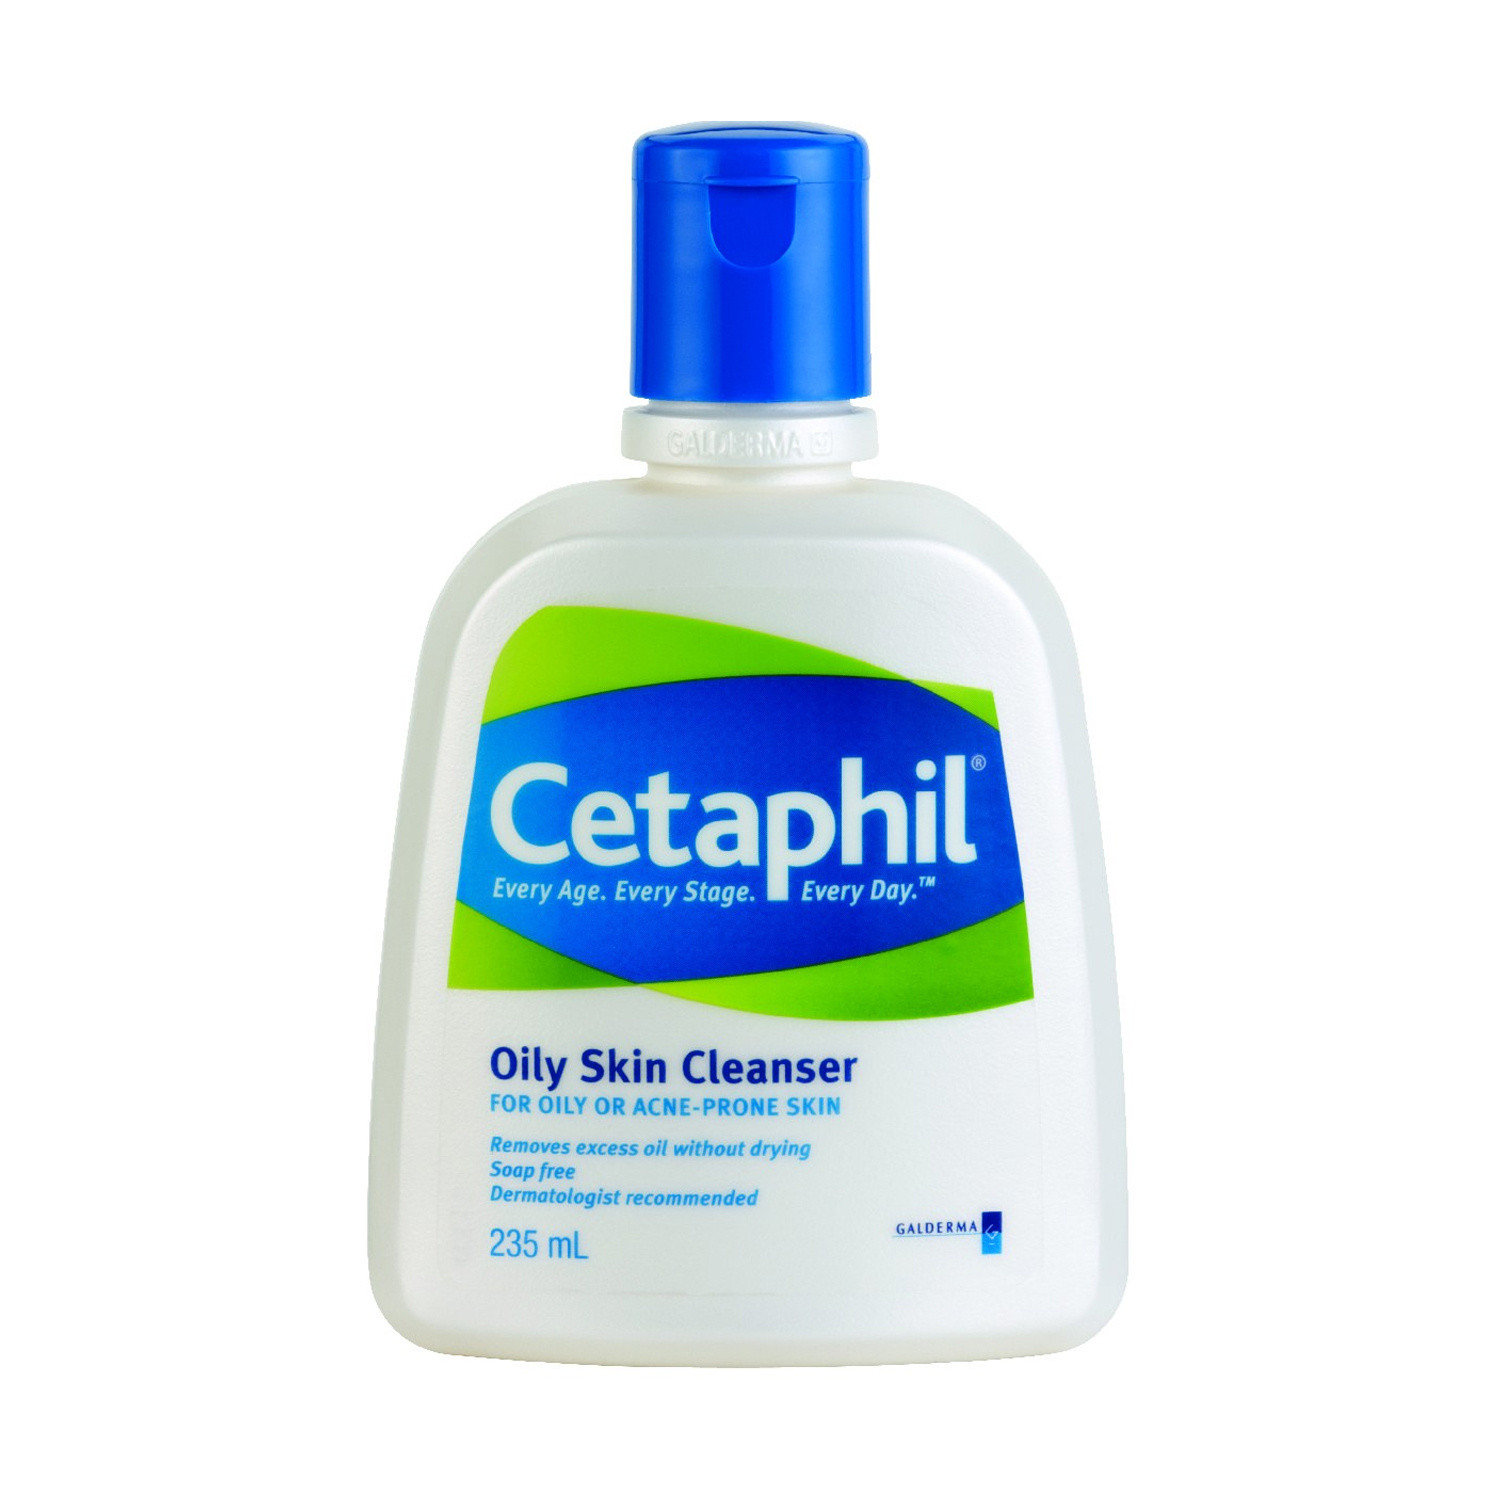 Cetaphil Oily Skin Cleanser Face